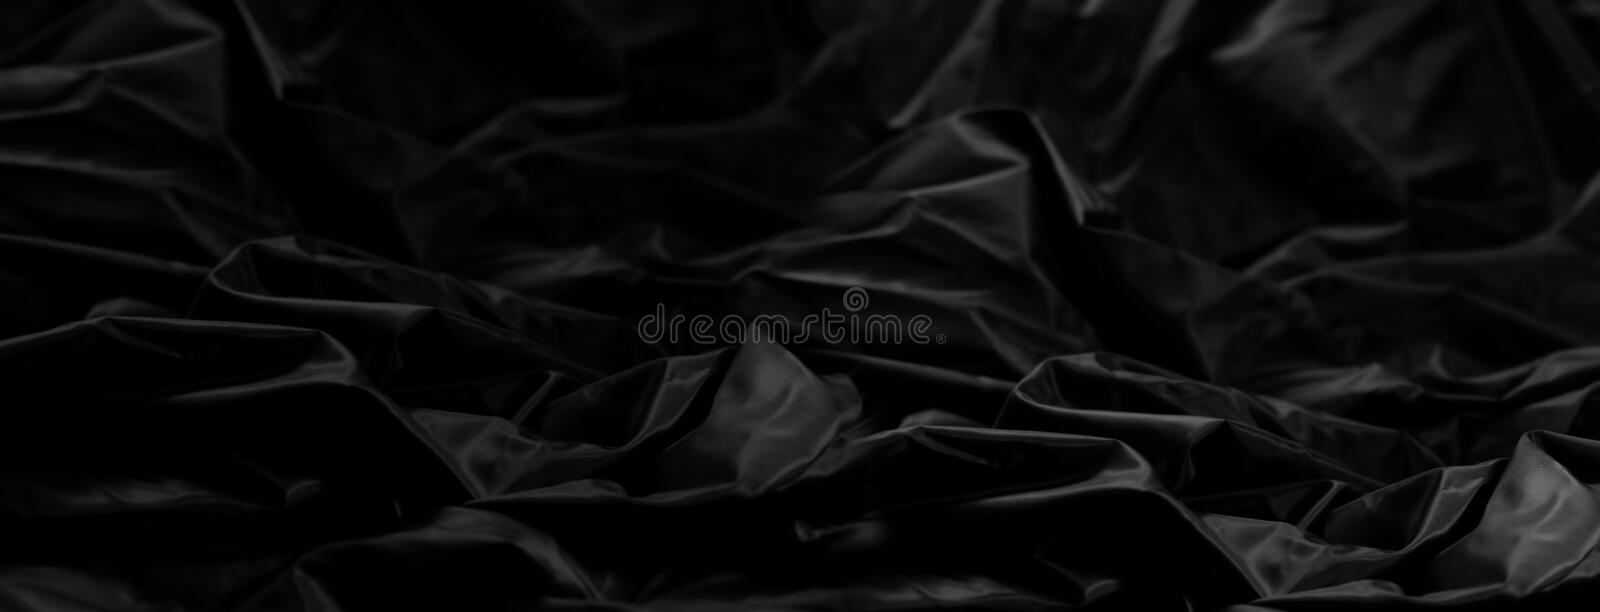 AtinElegant black s silk with waves, abstract background. Elegant black satin silk with waves, abstract background royalty free stock photography